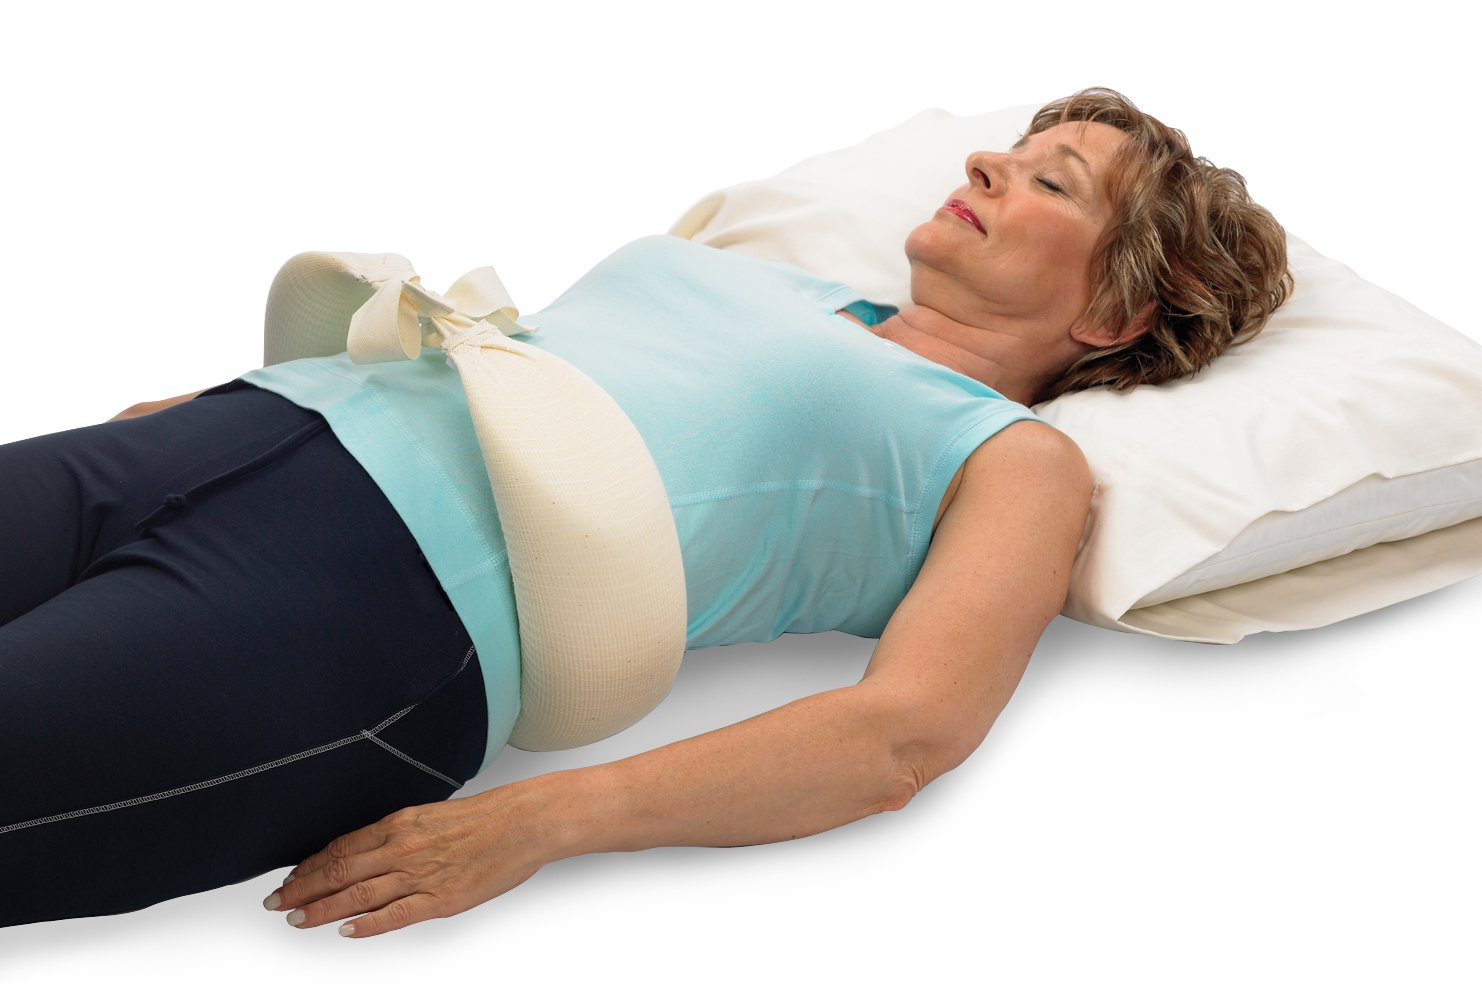 Cuscino Mckenzie Lumbar Roll.Robin Mckenzie Neck Roll 7 Steps To A Pain Free Life How To Rapidly